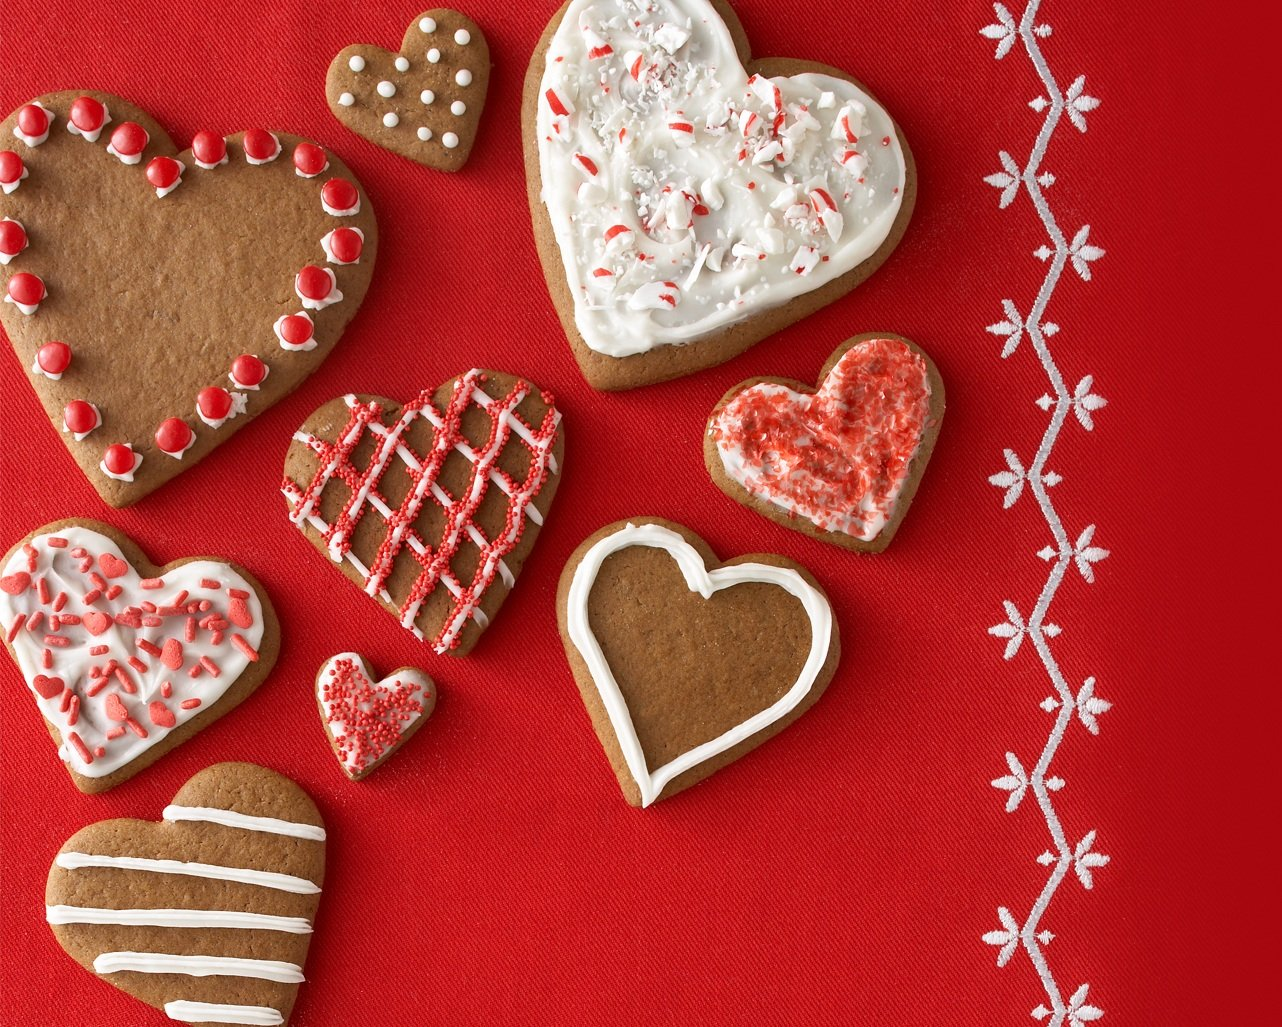 cookies valentines day wallpaper for desktop 1282x1027